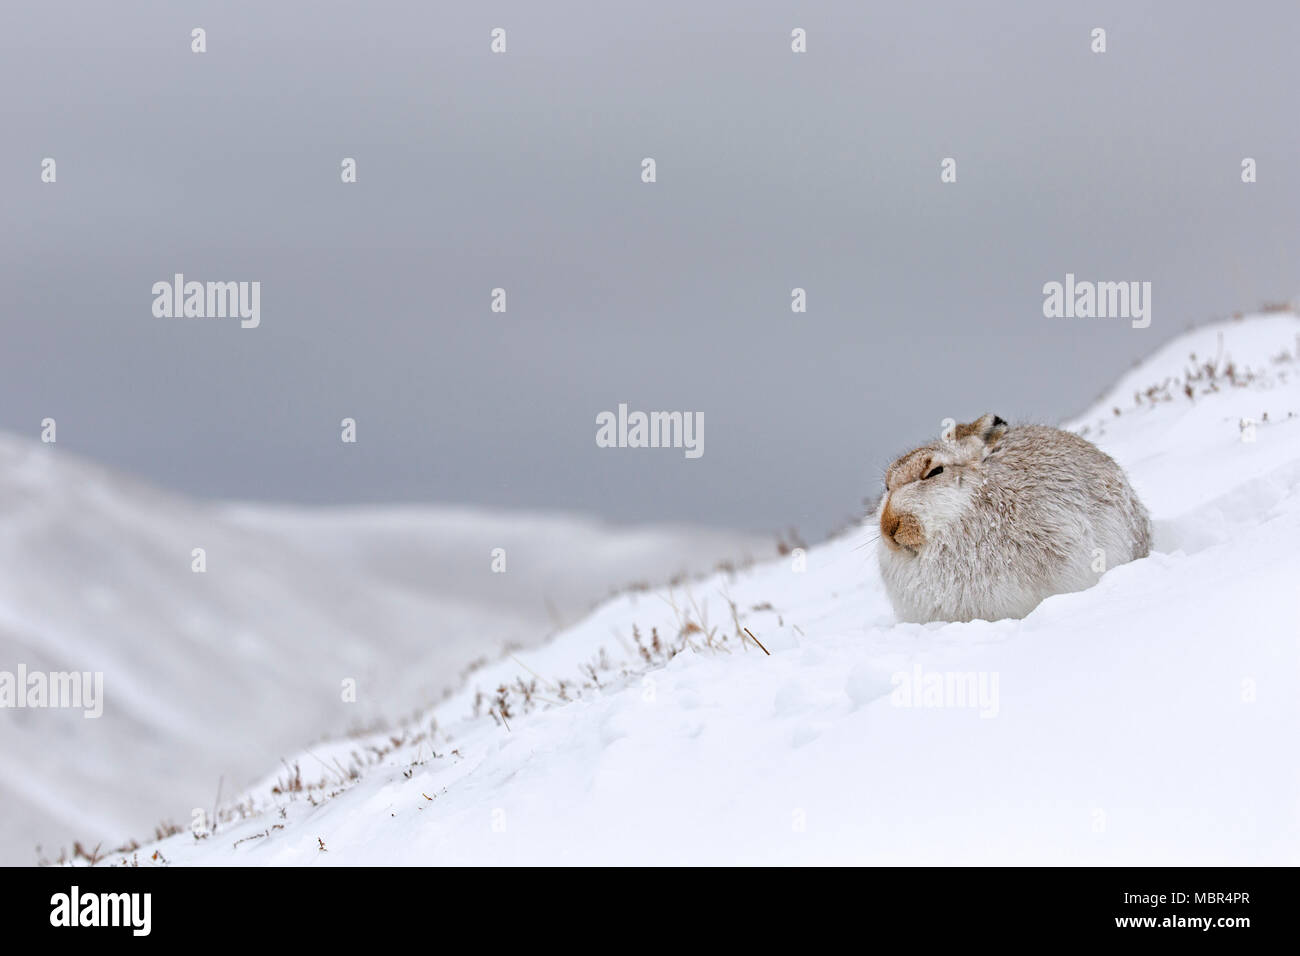 Mountain hare / Alpine hare / snow hare (Lepus timidus) in white winter pelage resting during snowstorm in the Scottish Highlands, Scotland, UK - Stock Image